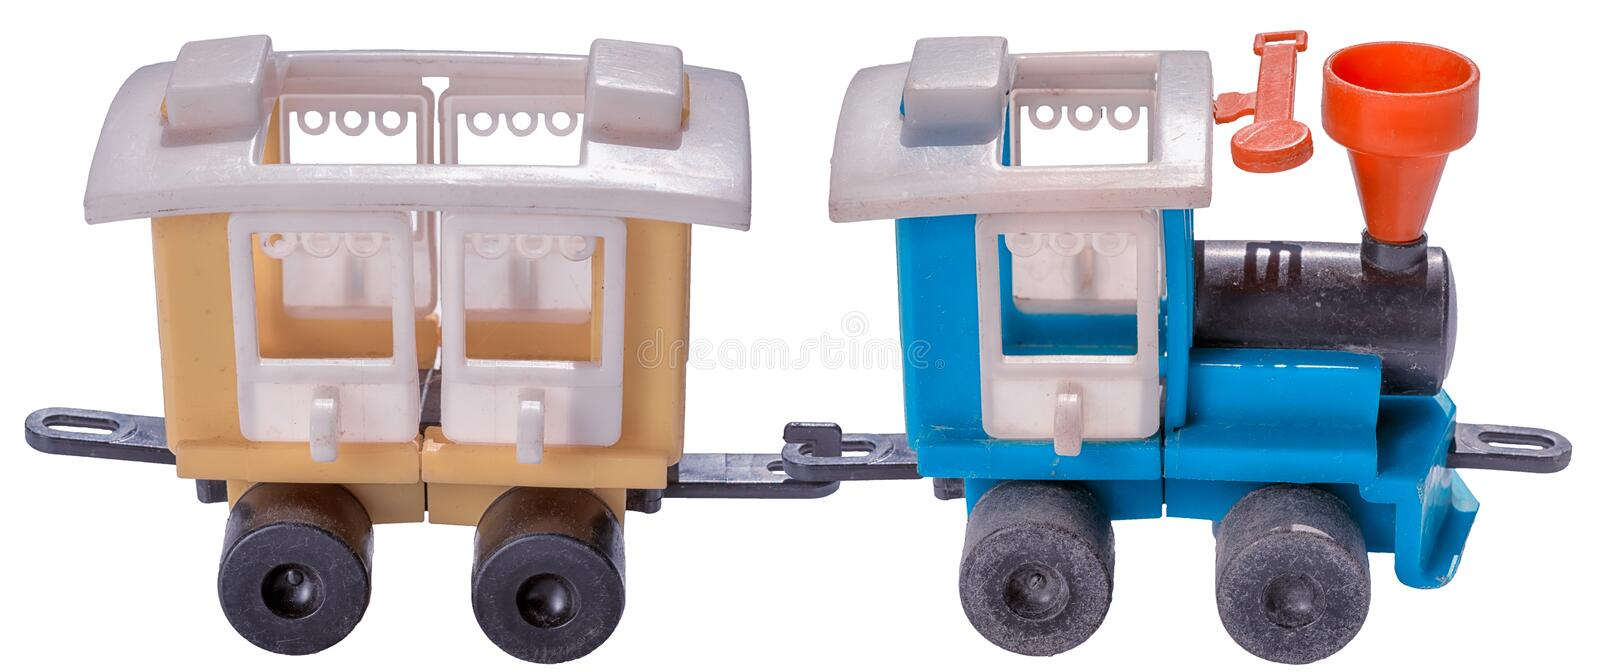 Old plastic toy train isolated royalty free stock photos